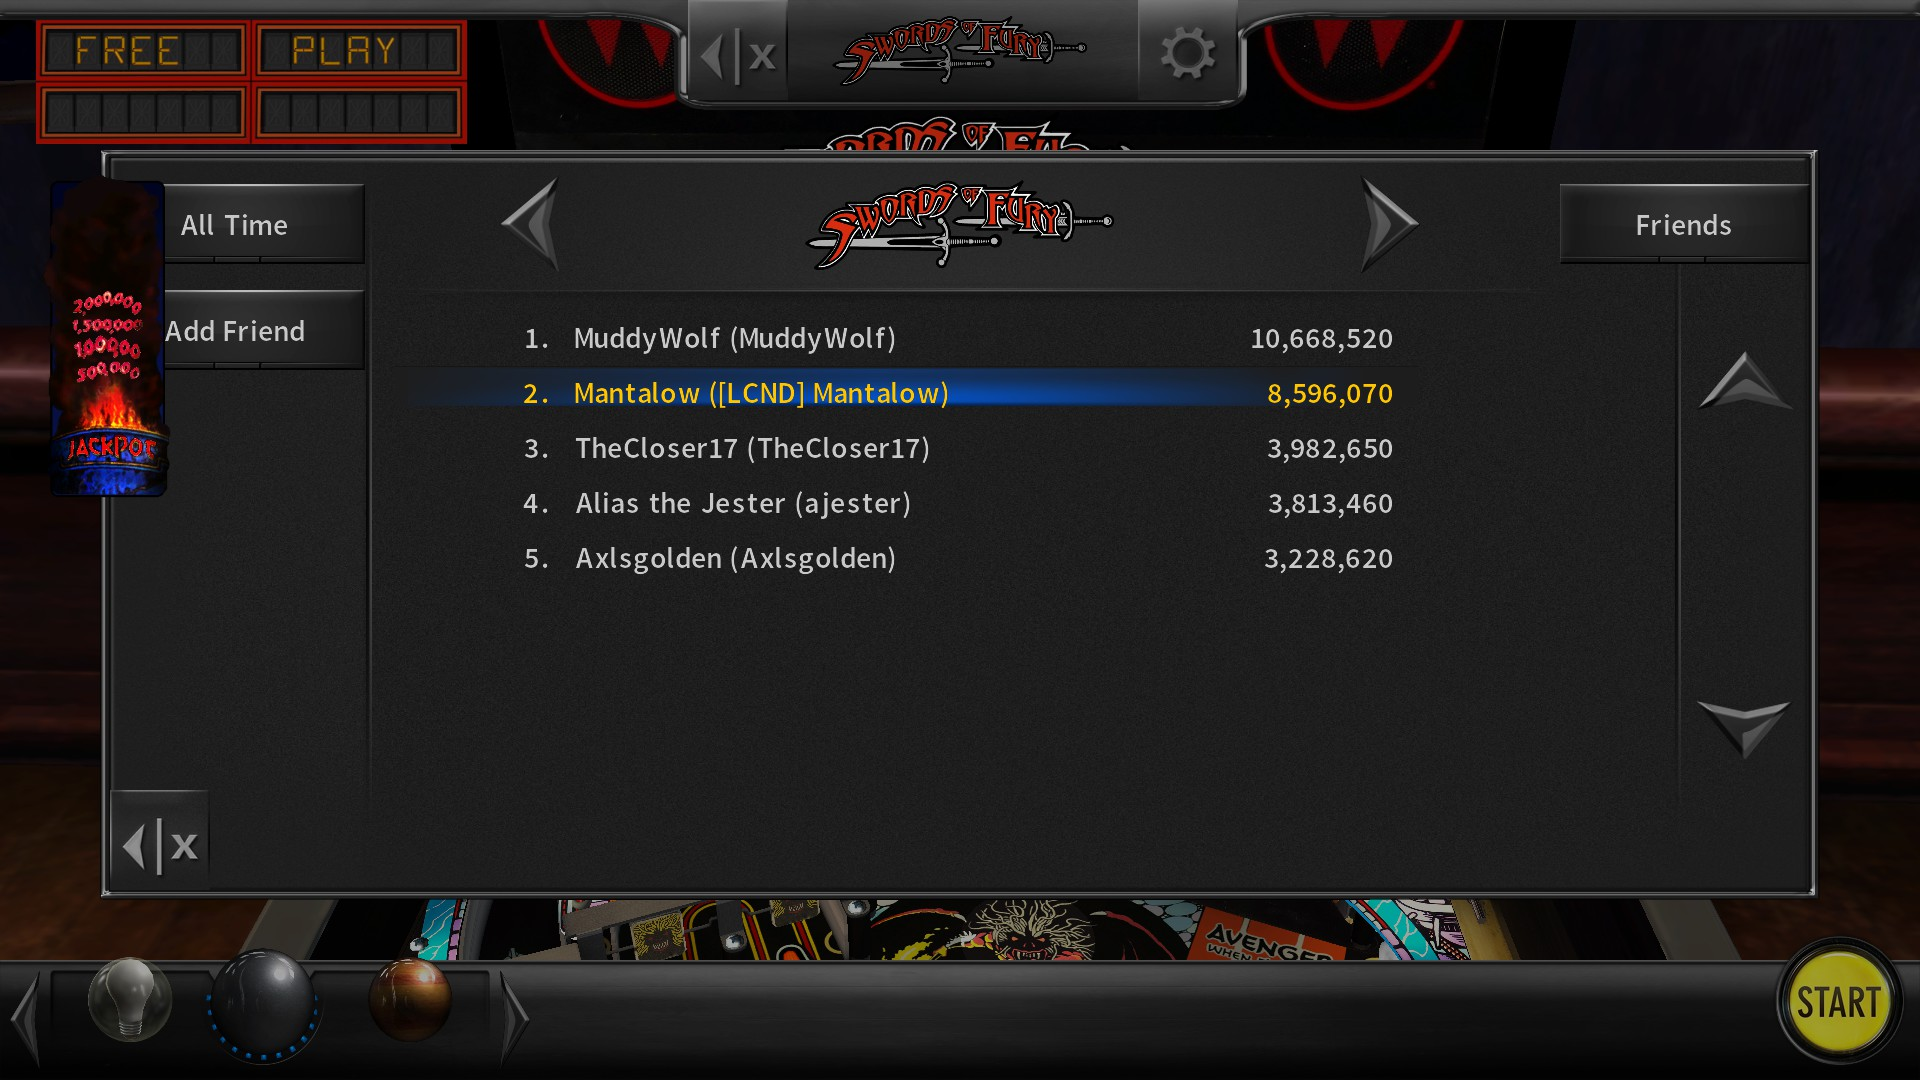 Mantalow: Pinball Arcade: Swords of Fury (PC) 8,596,070 points on 2017-04-13 03:59:28